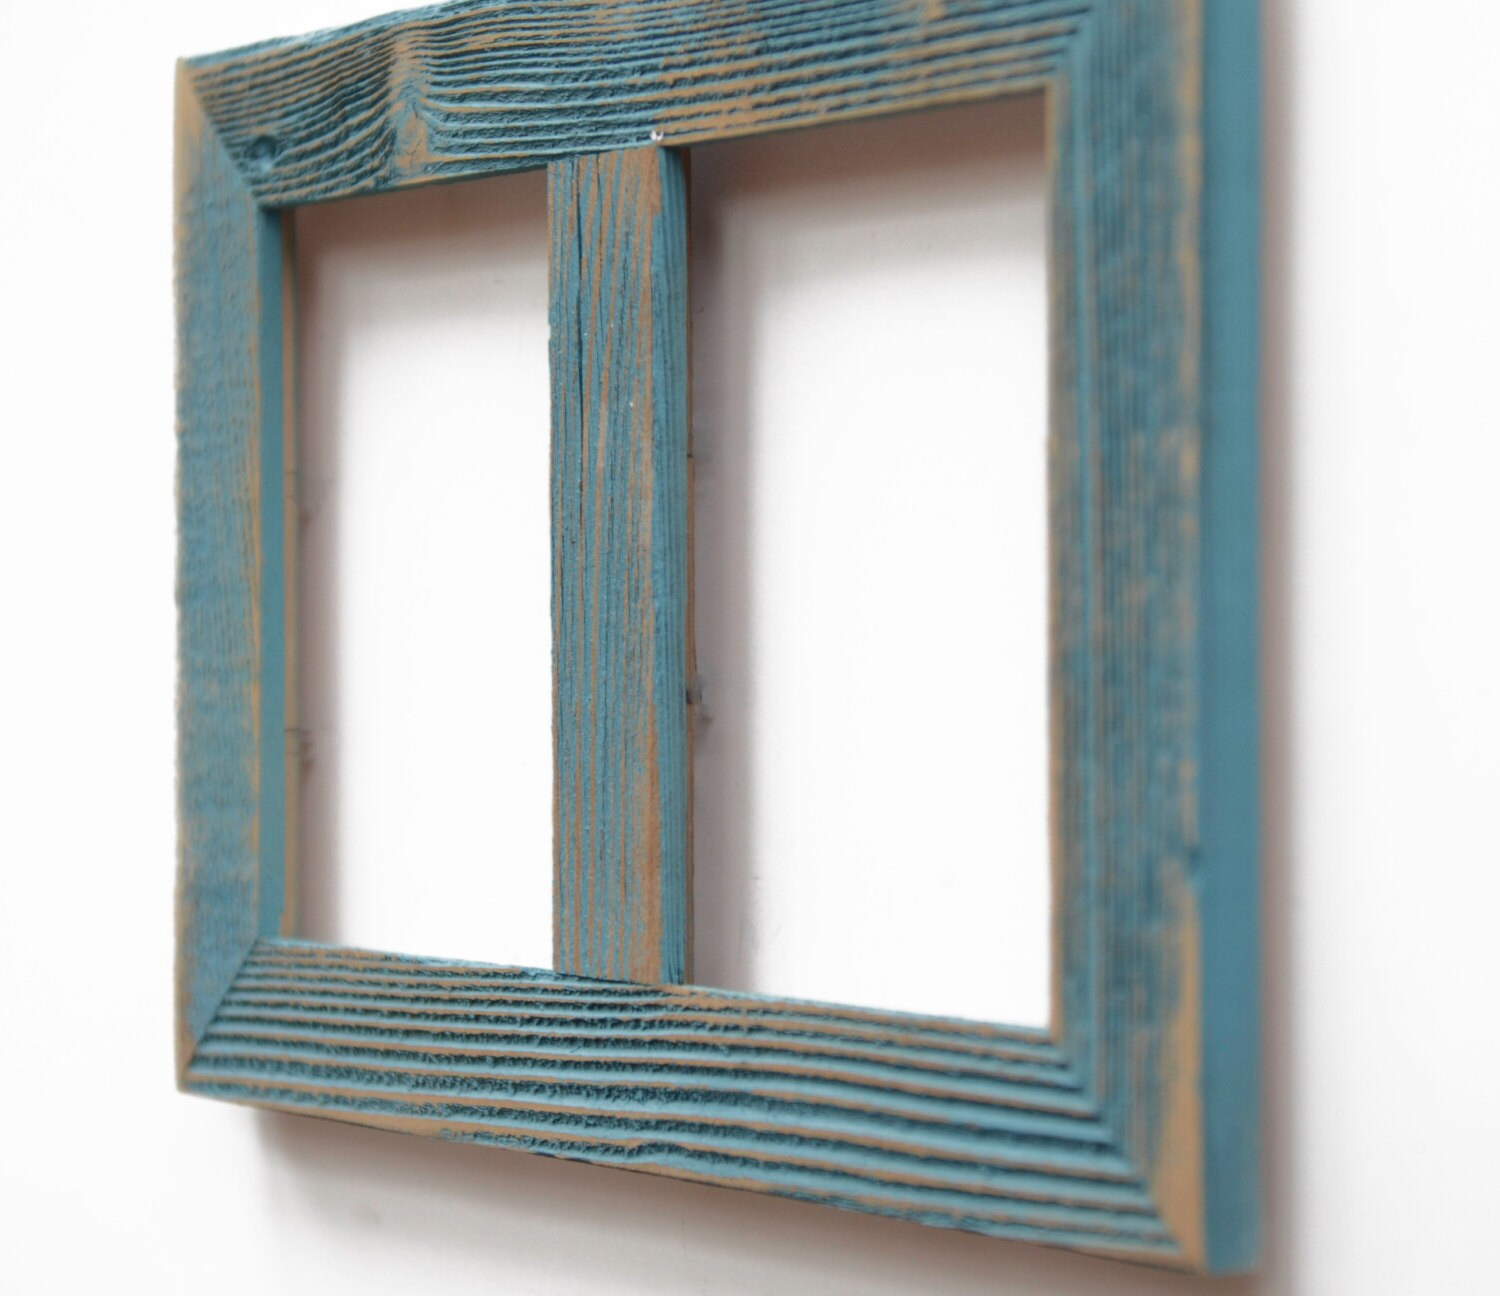 8x10 Collage Frame Picture Frame Collage With 2 Openings That Will